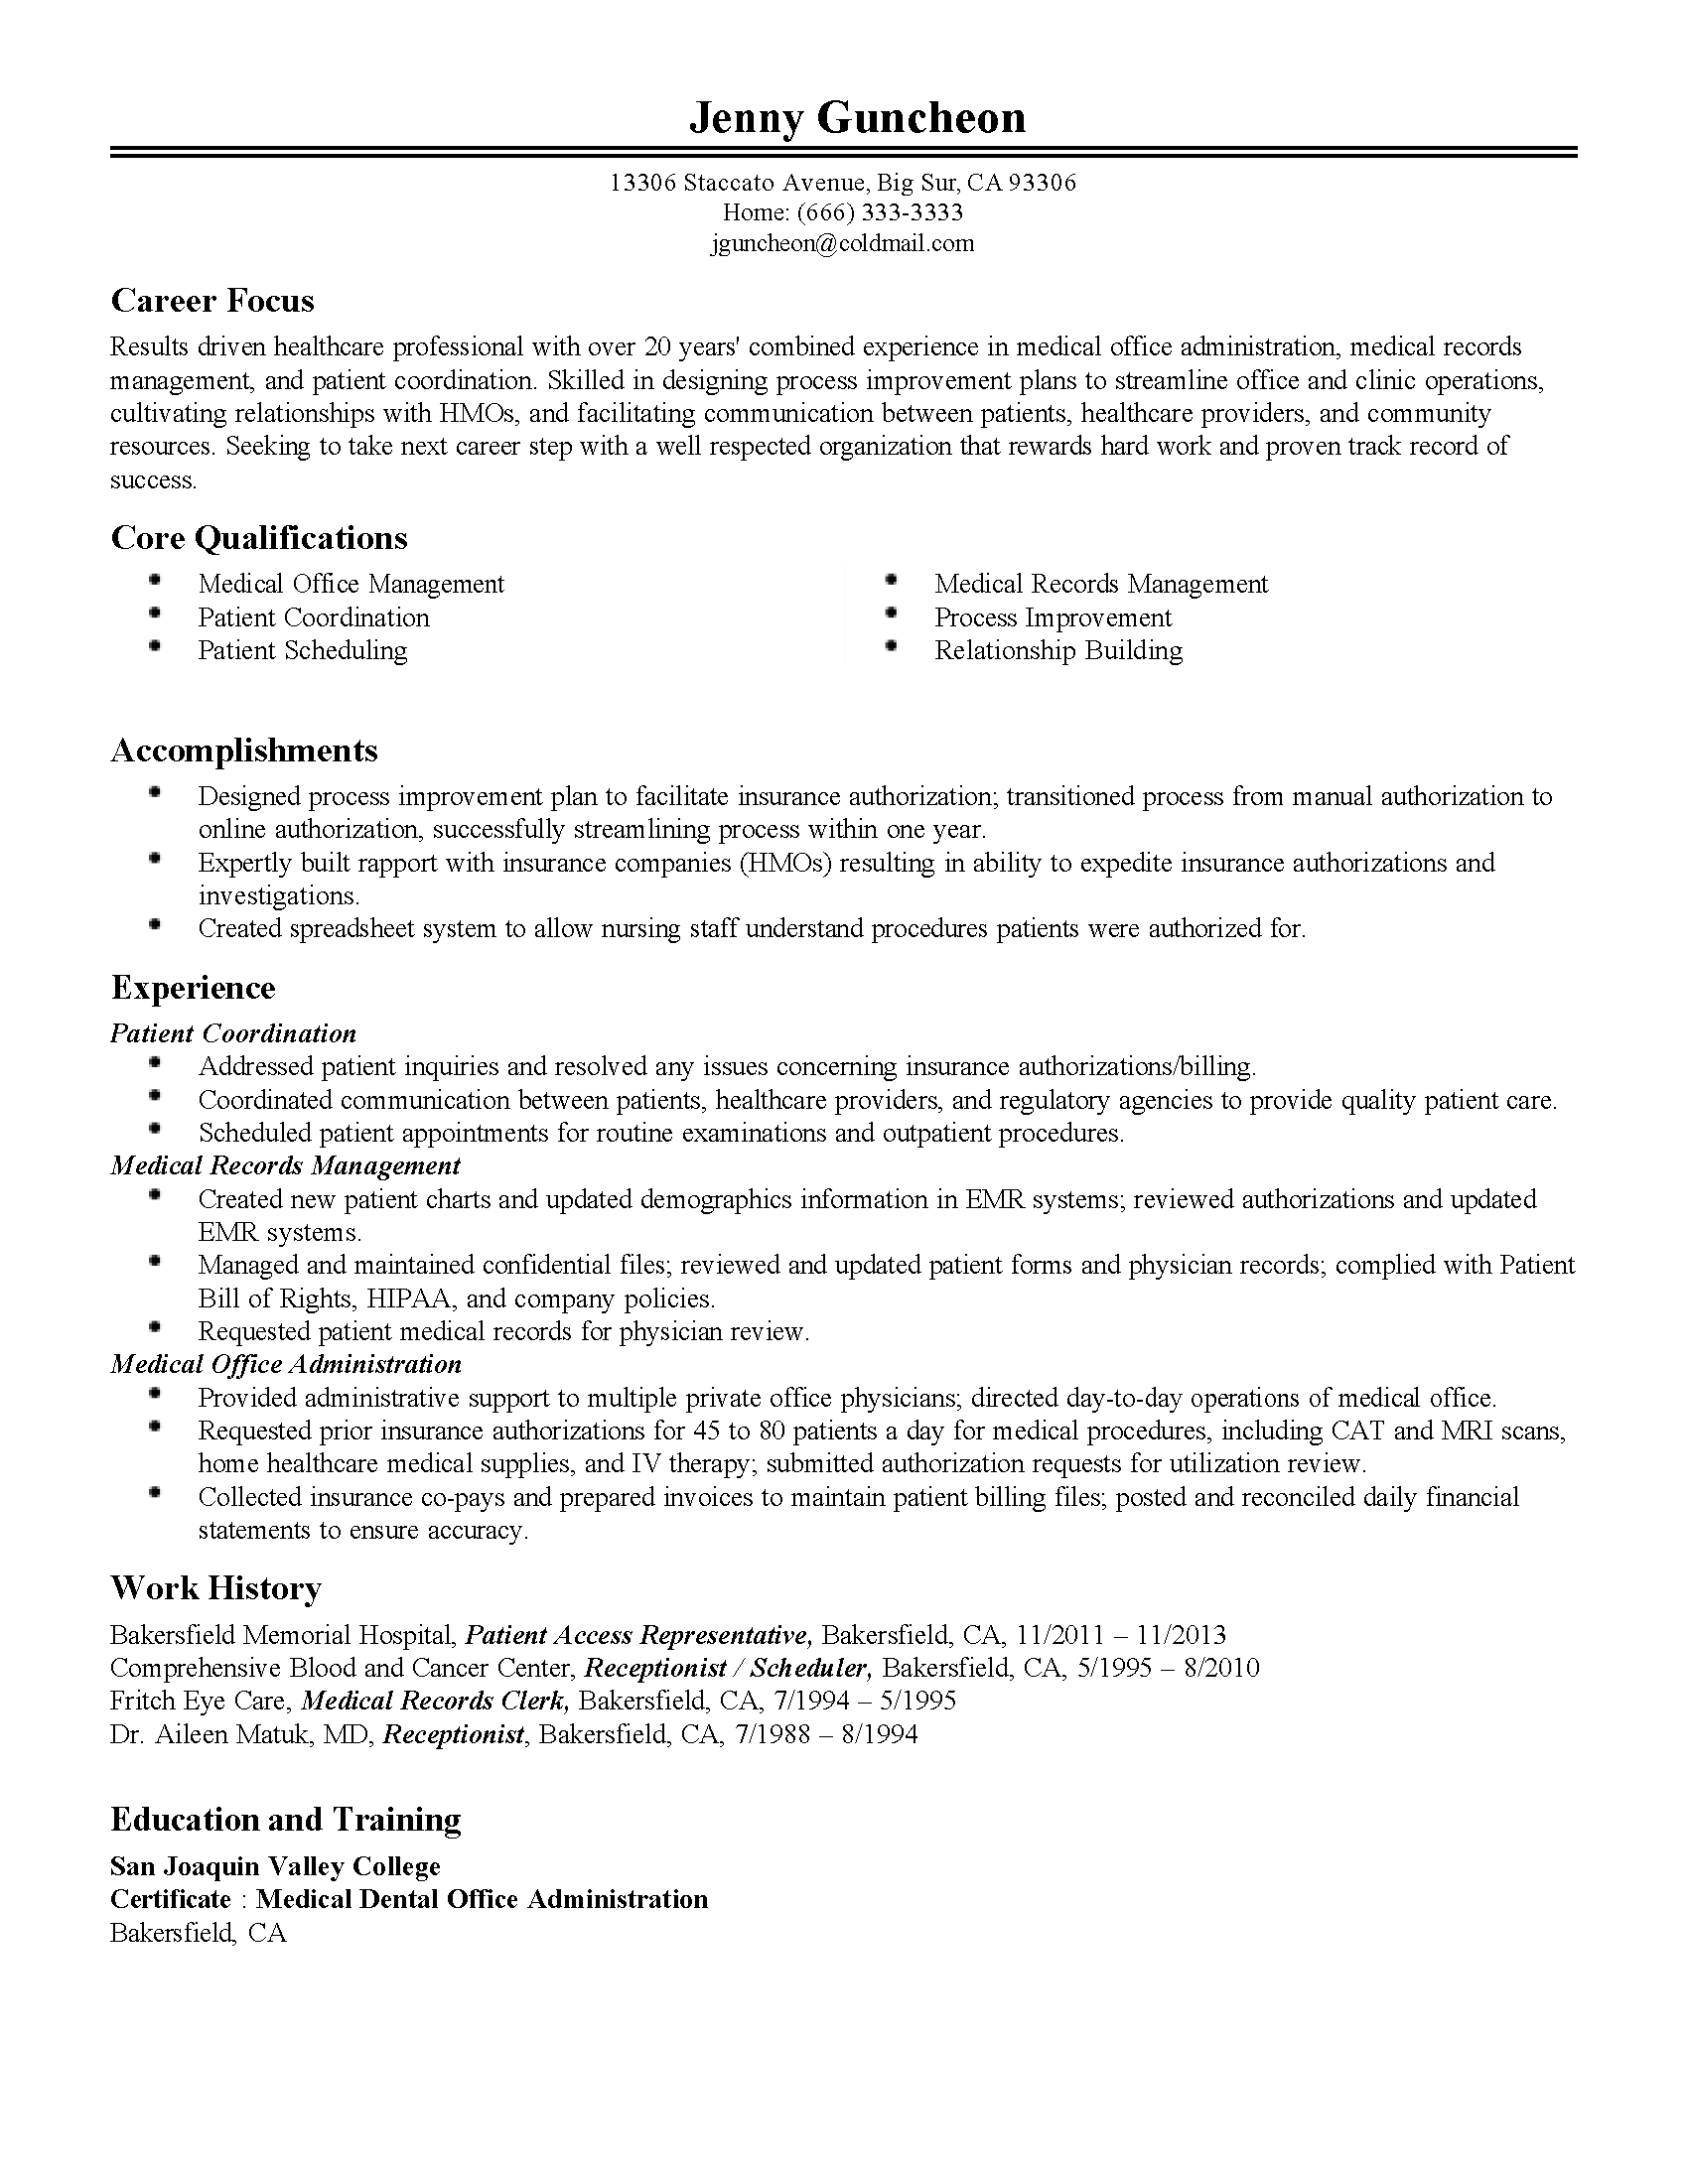 Cover Letter Shipping And Receiving Manager Job Description For Resume Templates Medical Office Administration